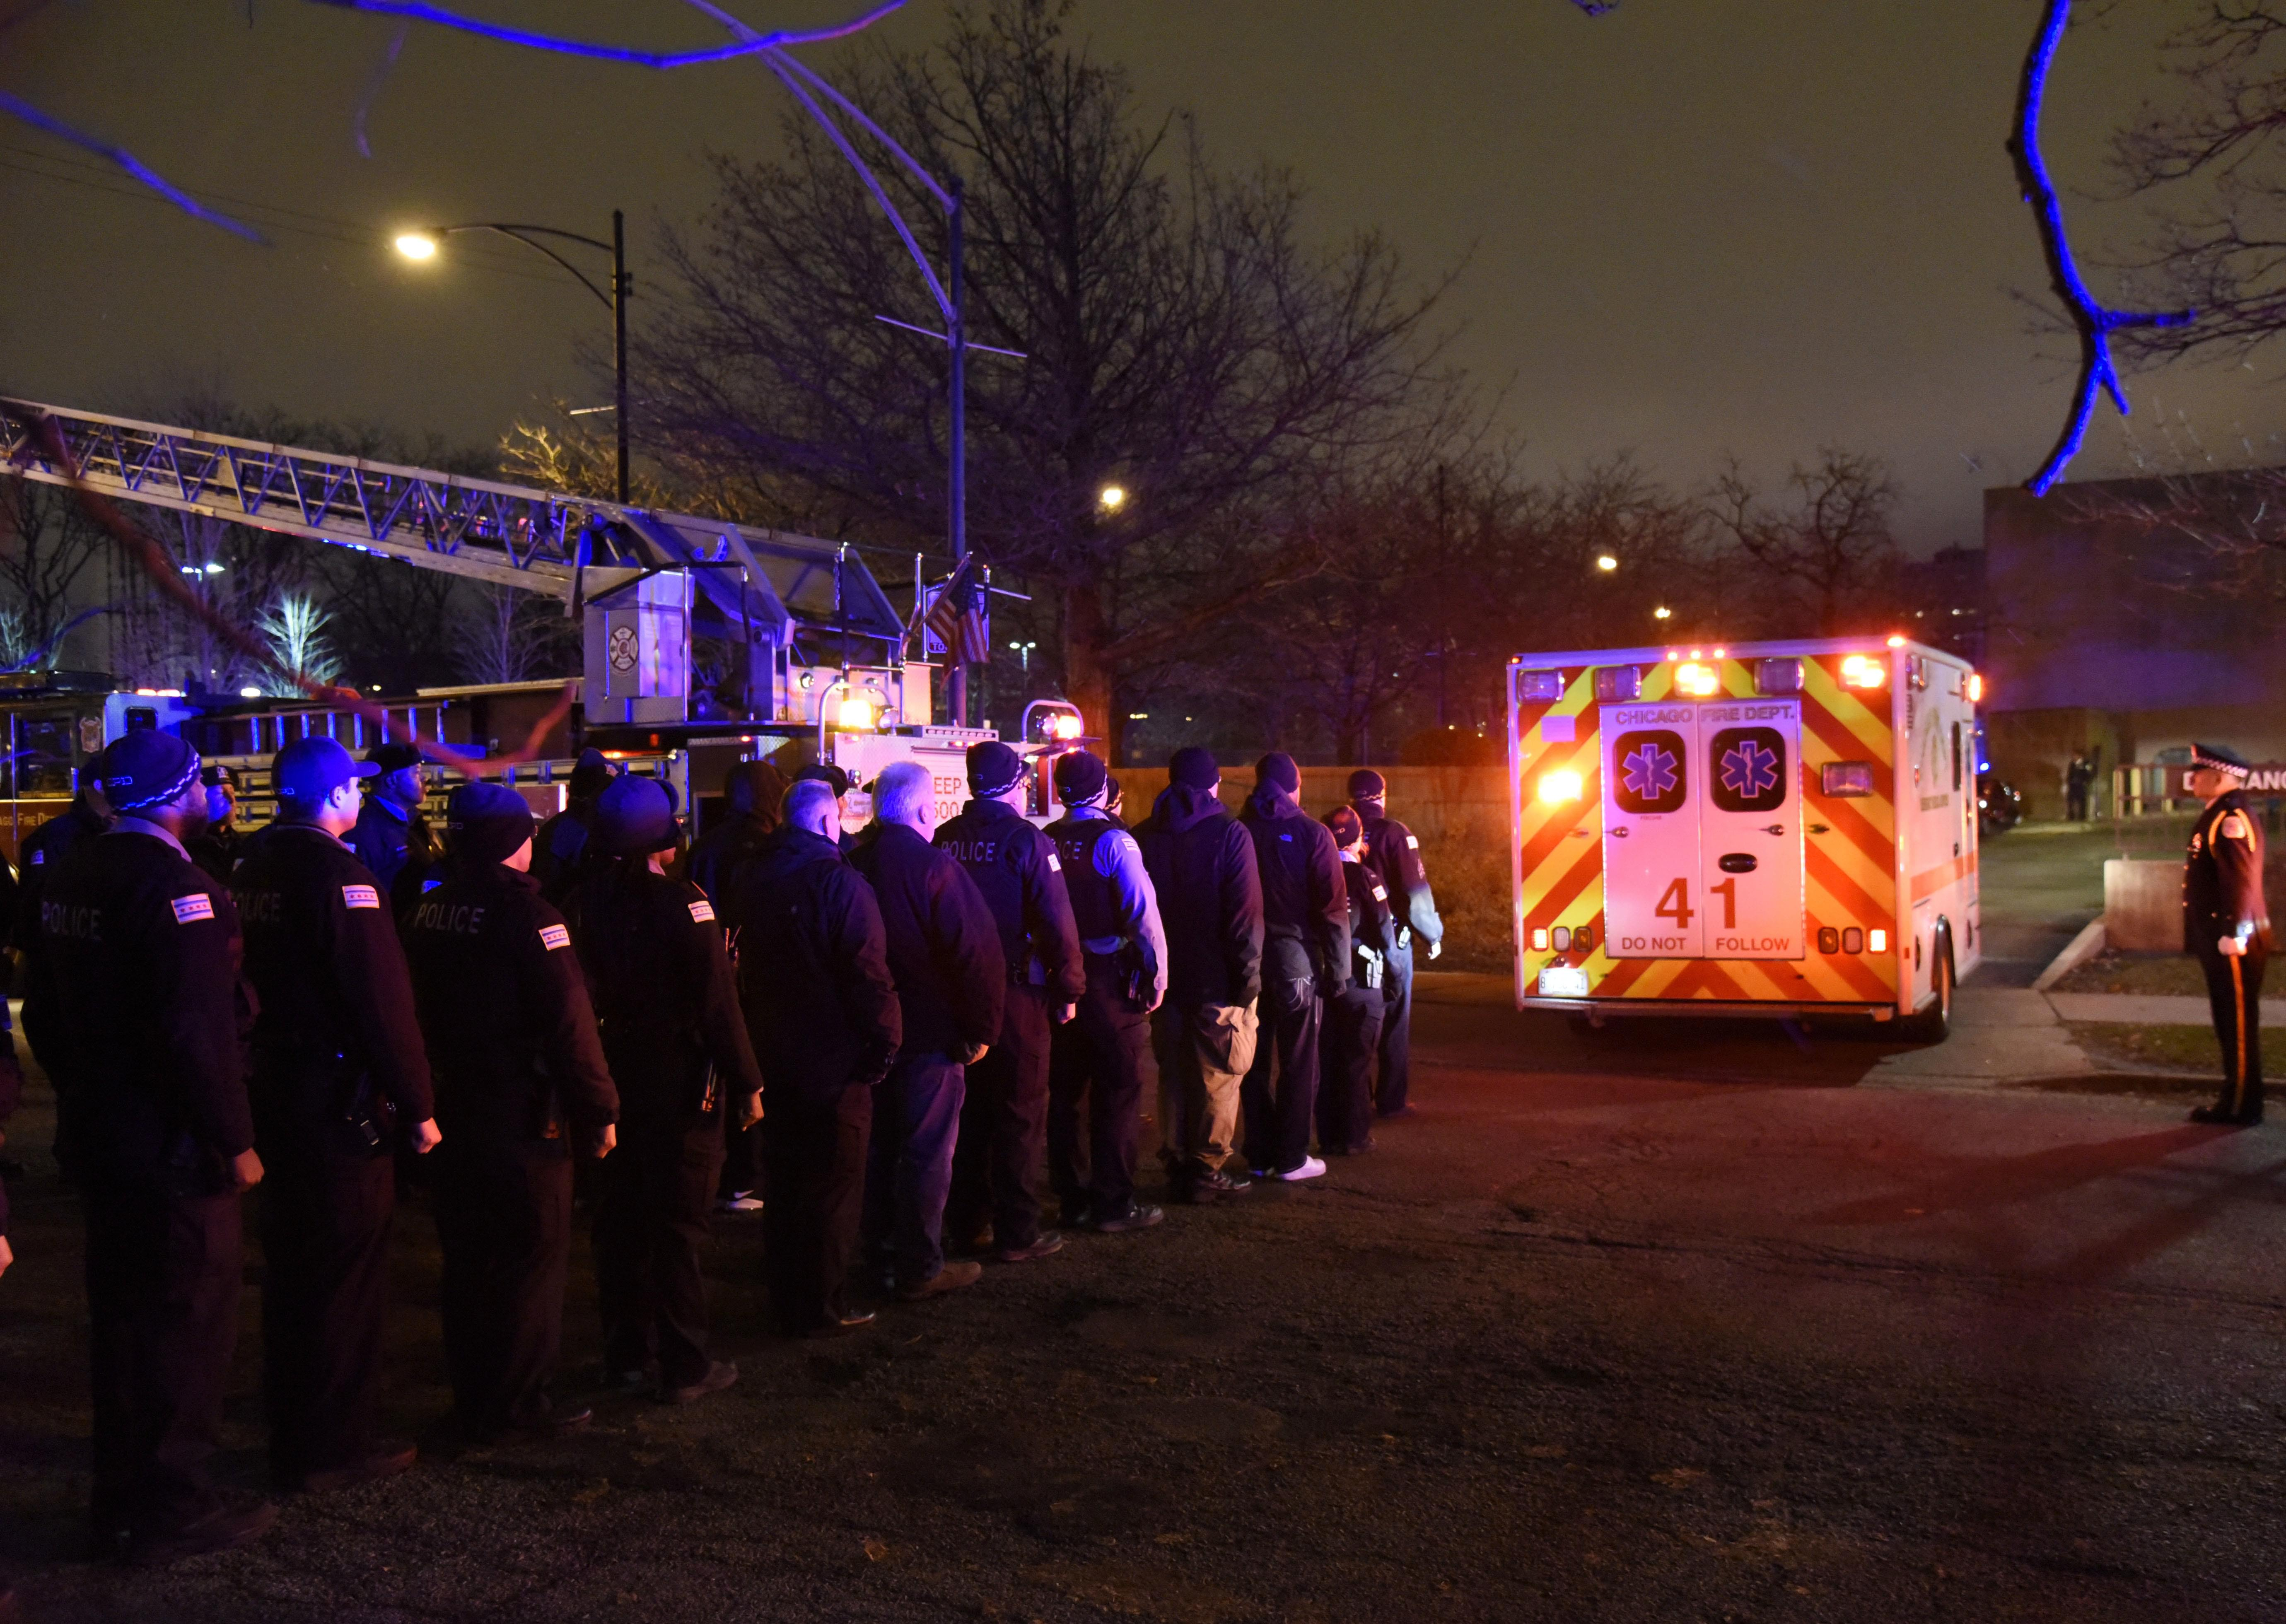 The latest: Argument at Chicago hospital erupts into deadly shooting